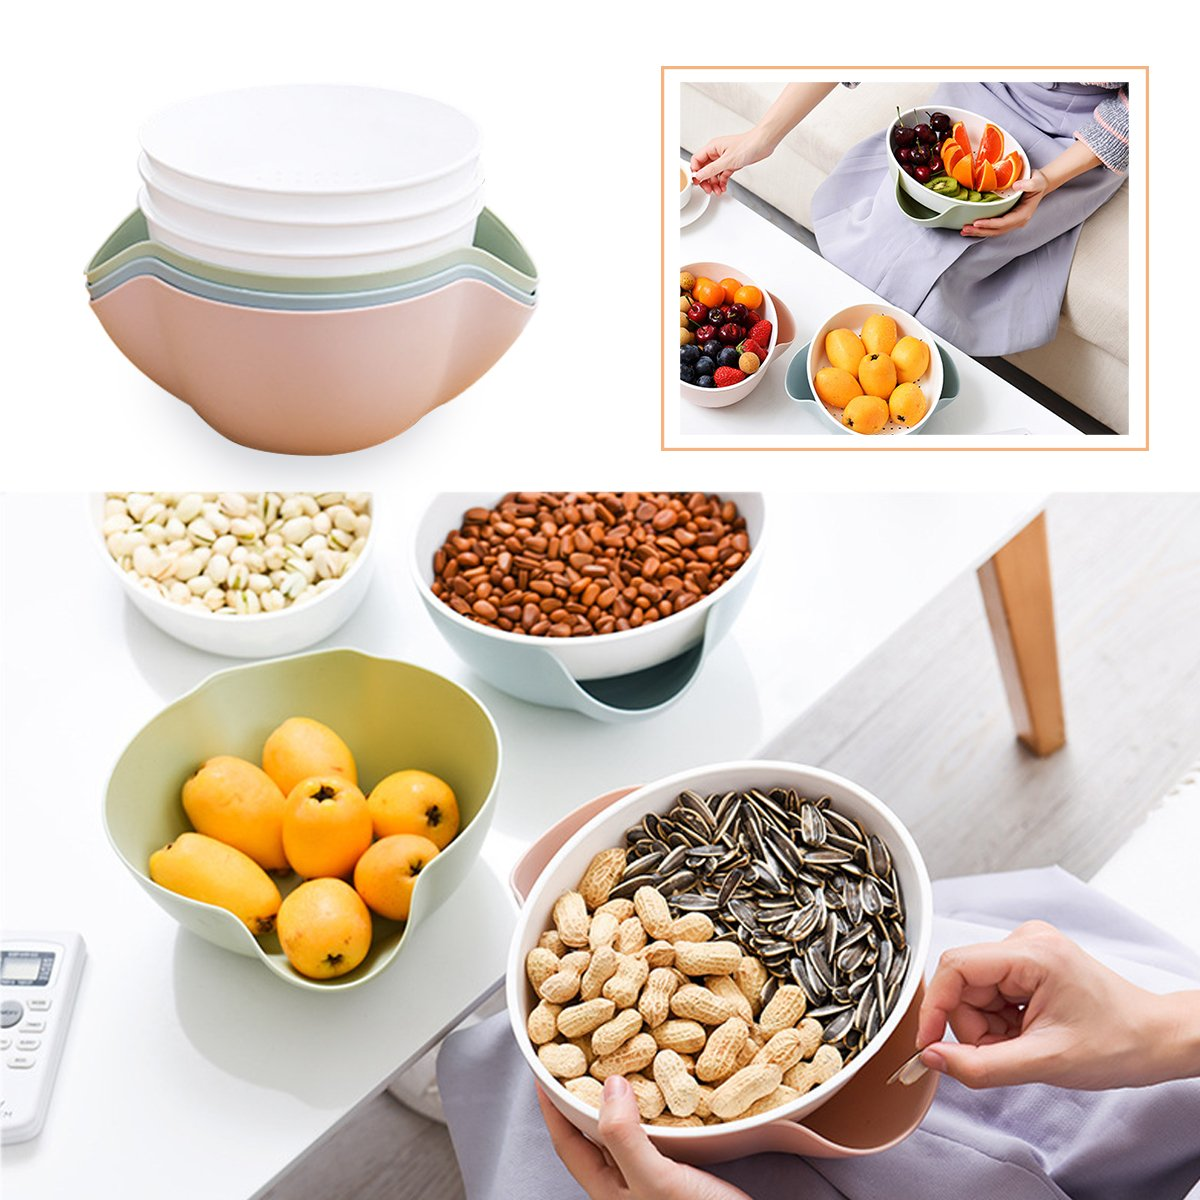 Mochiglory Creative Plastic Double Disc Fruit Tray Snacks Fruit Plate Modern Living Room Simple Household Drain Basin Colander and Bowl Set